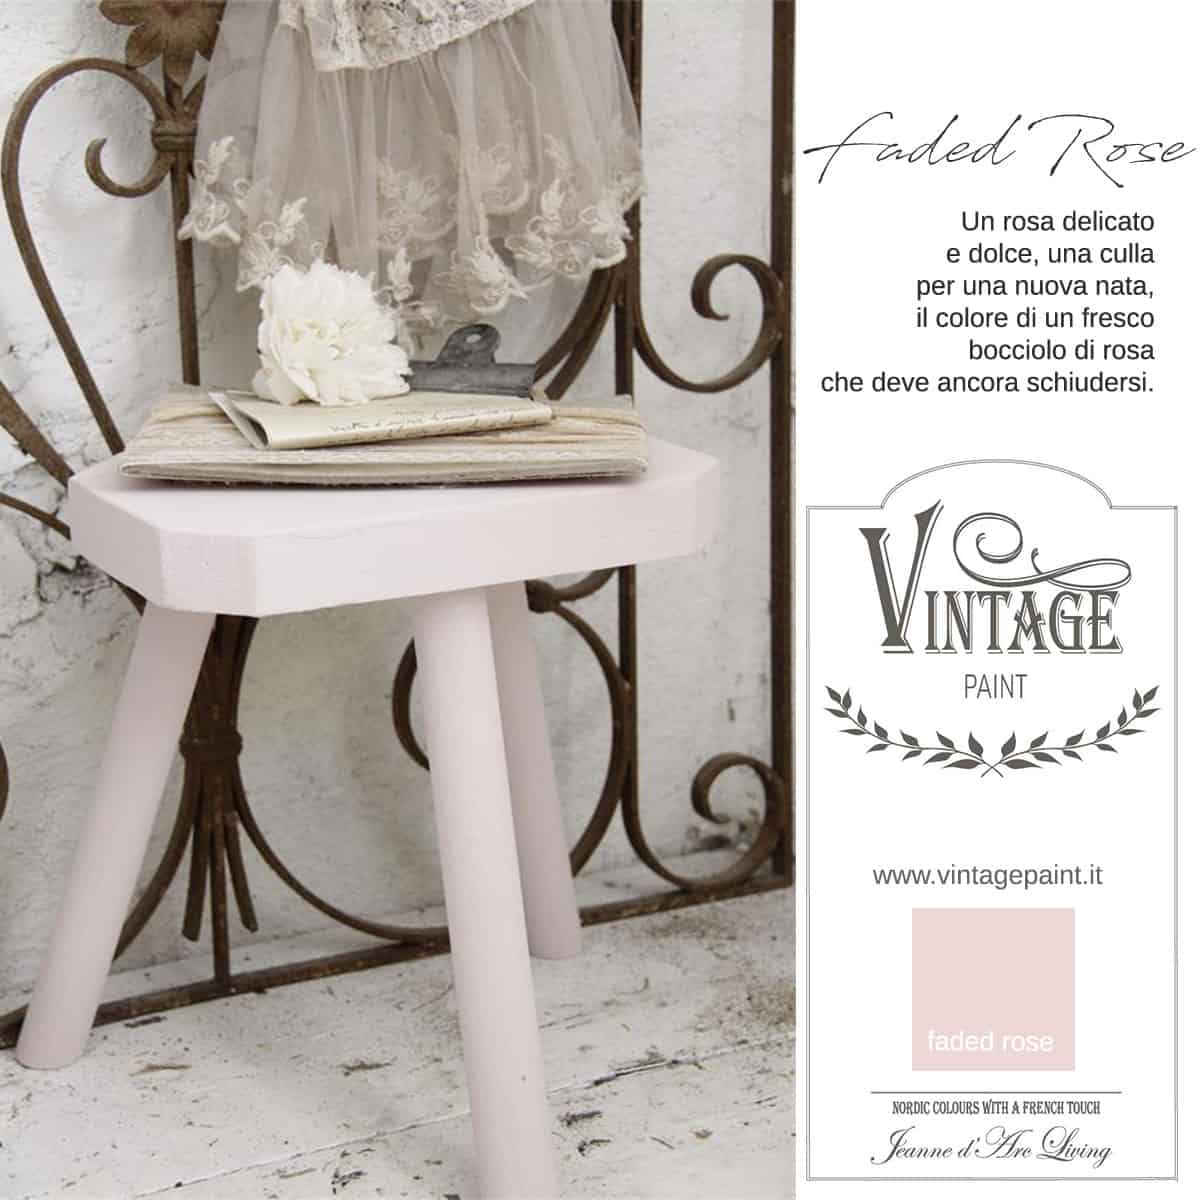 faded rose rosa vintage chalk paint vernici shabby chic autentico look gesso